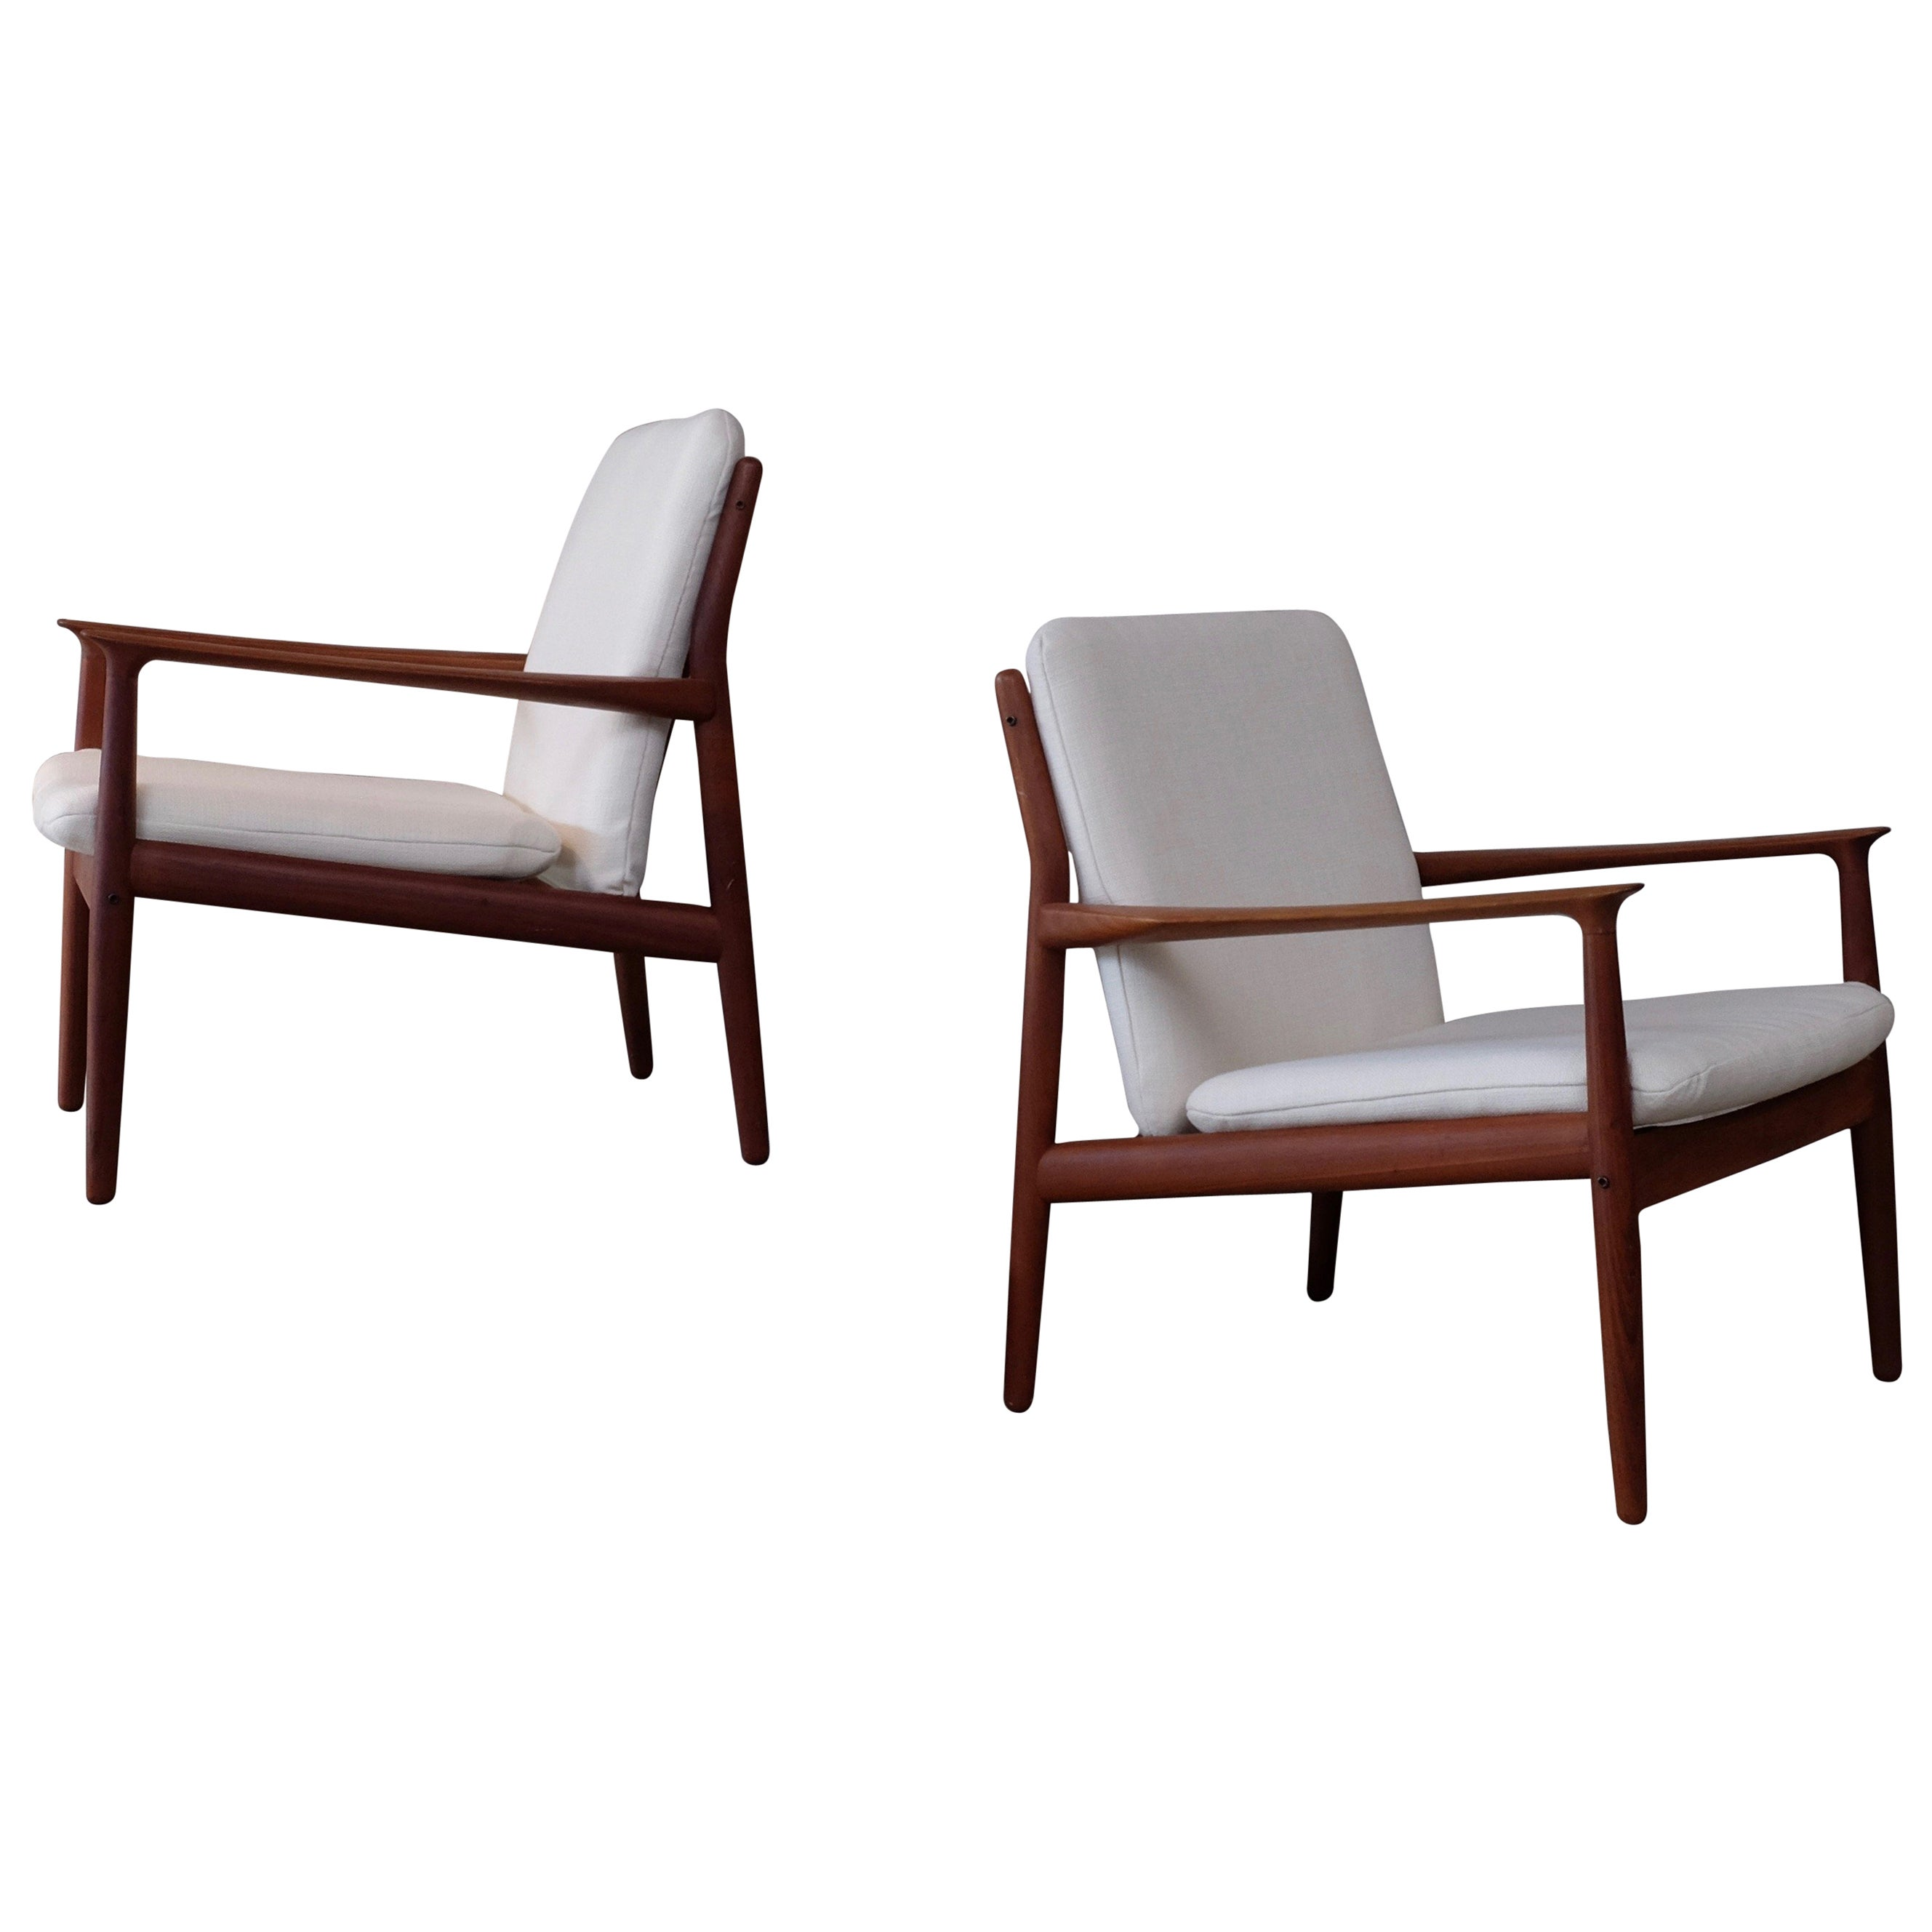 Pair of Svend Aage Eriksen Easy Chairs, Denmark, 1960s